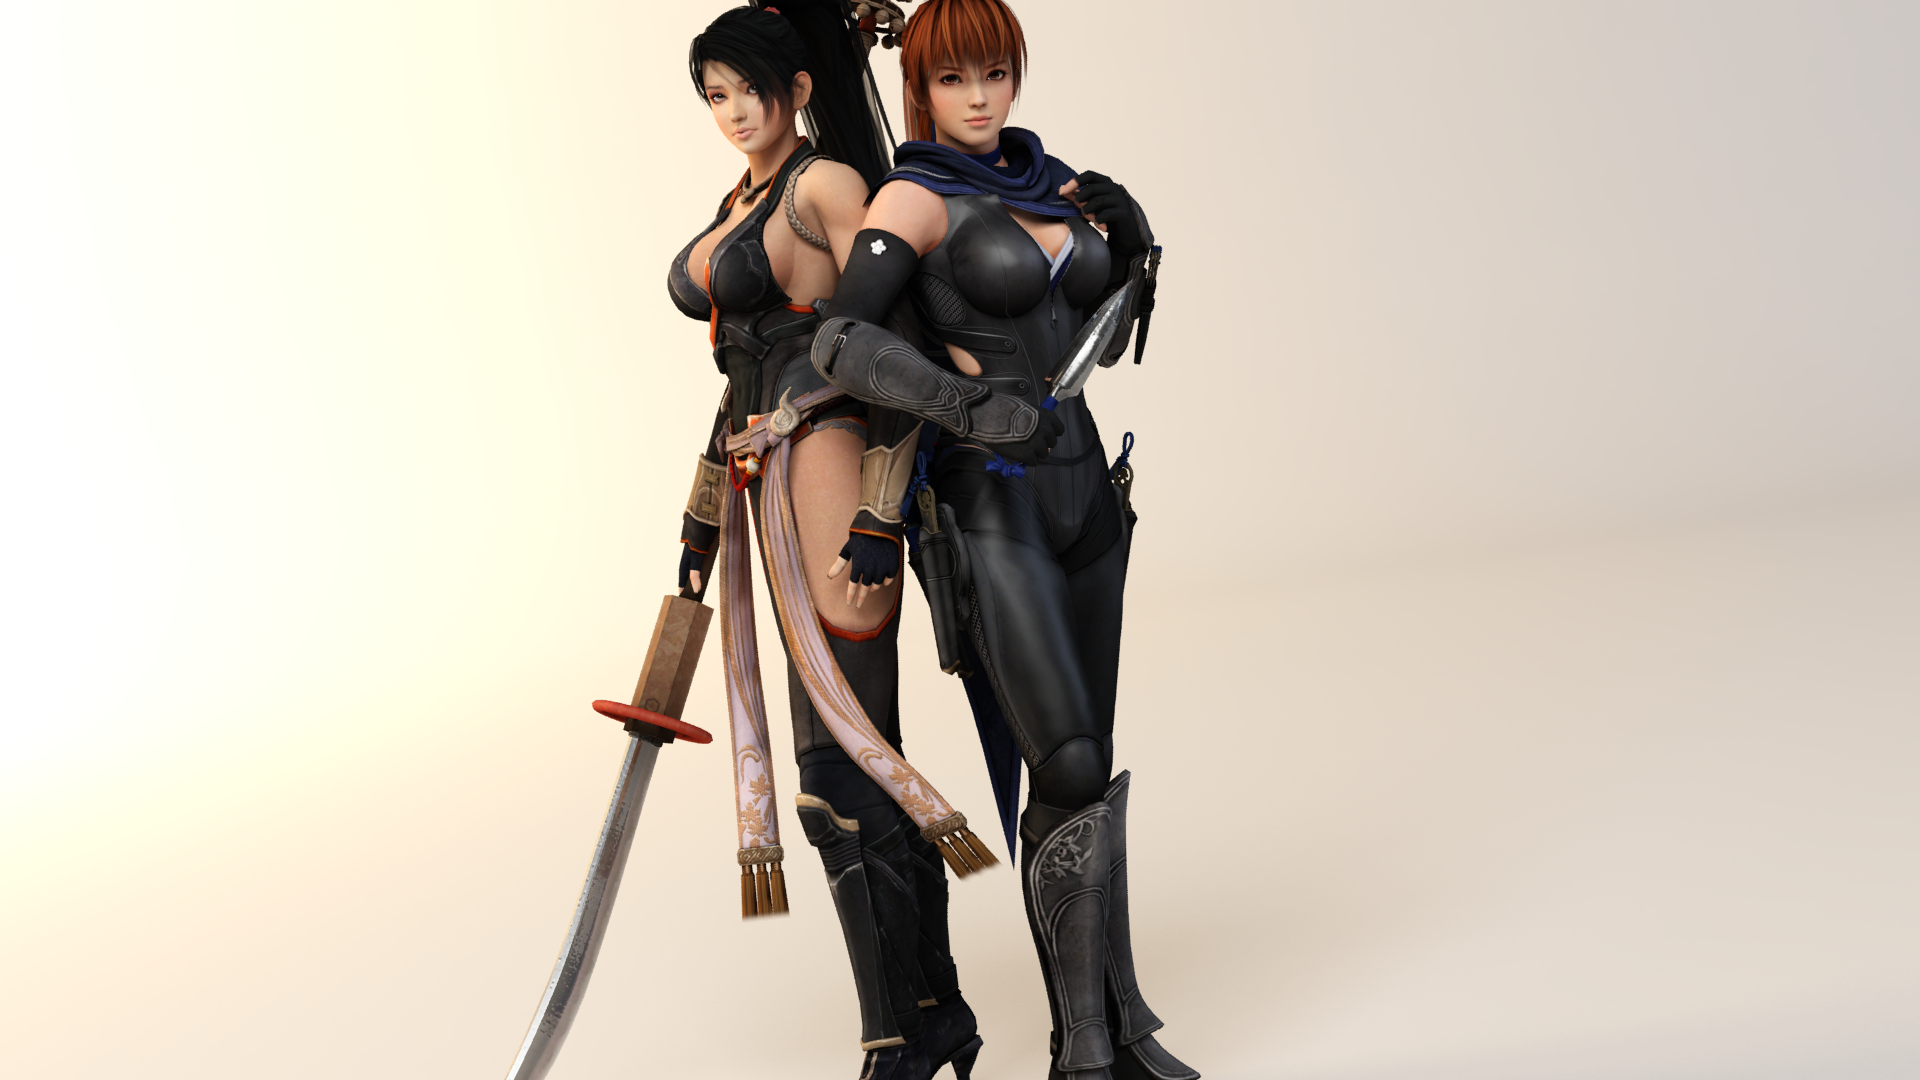 Momiji and Kasumi Semi-Finals by CeCeFever on DeviantArt